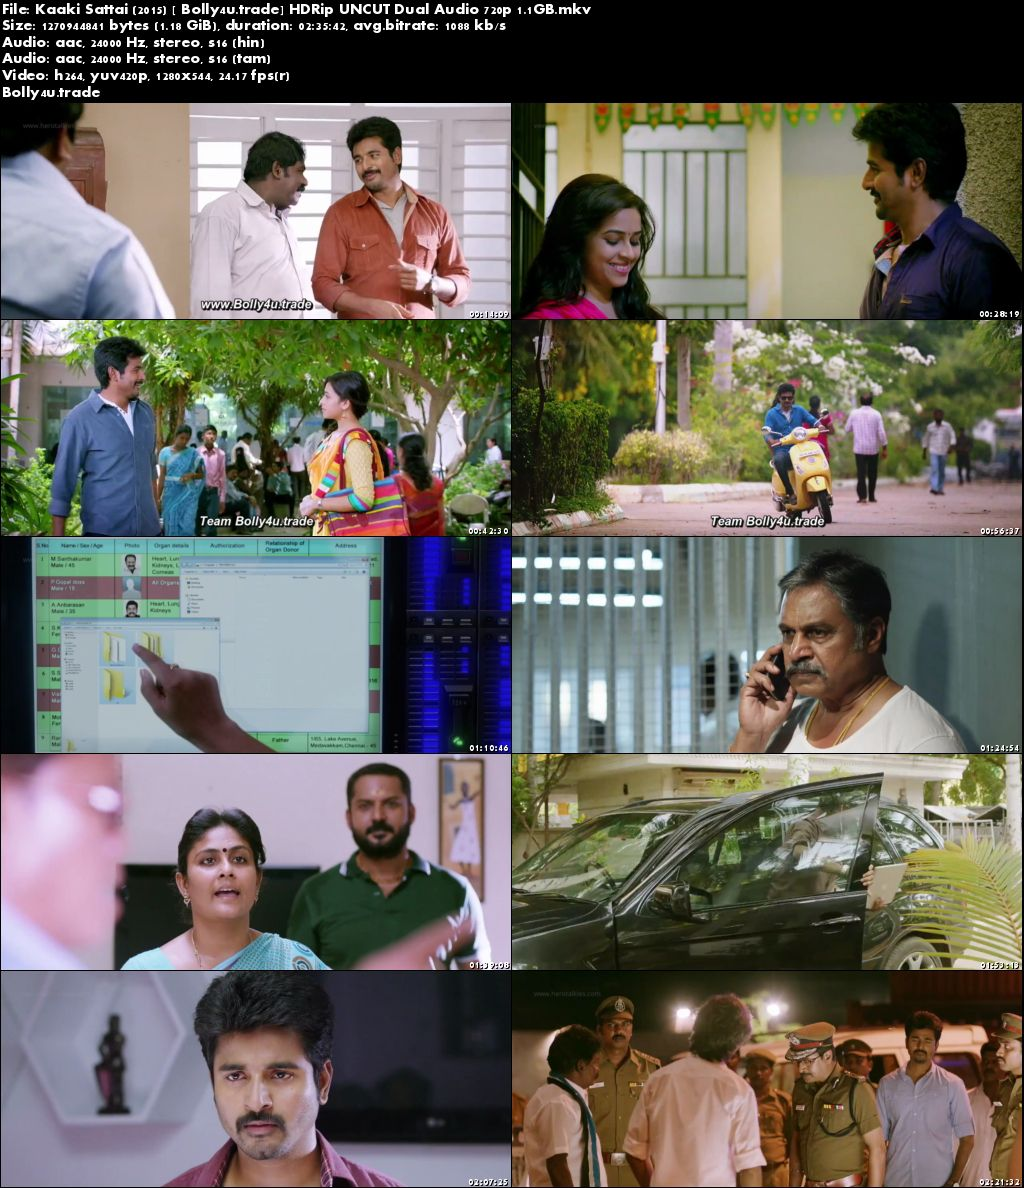 Kaaki Sattai 2015 HDRip 450MB UNCUT Hindi Dual Audio 480p Download